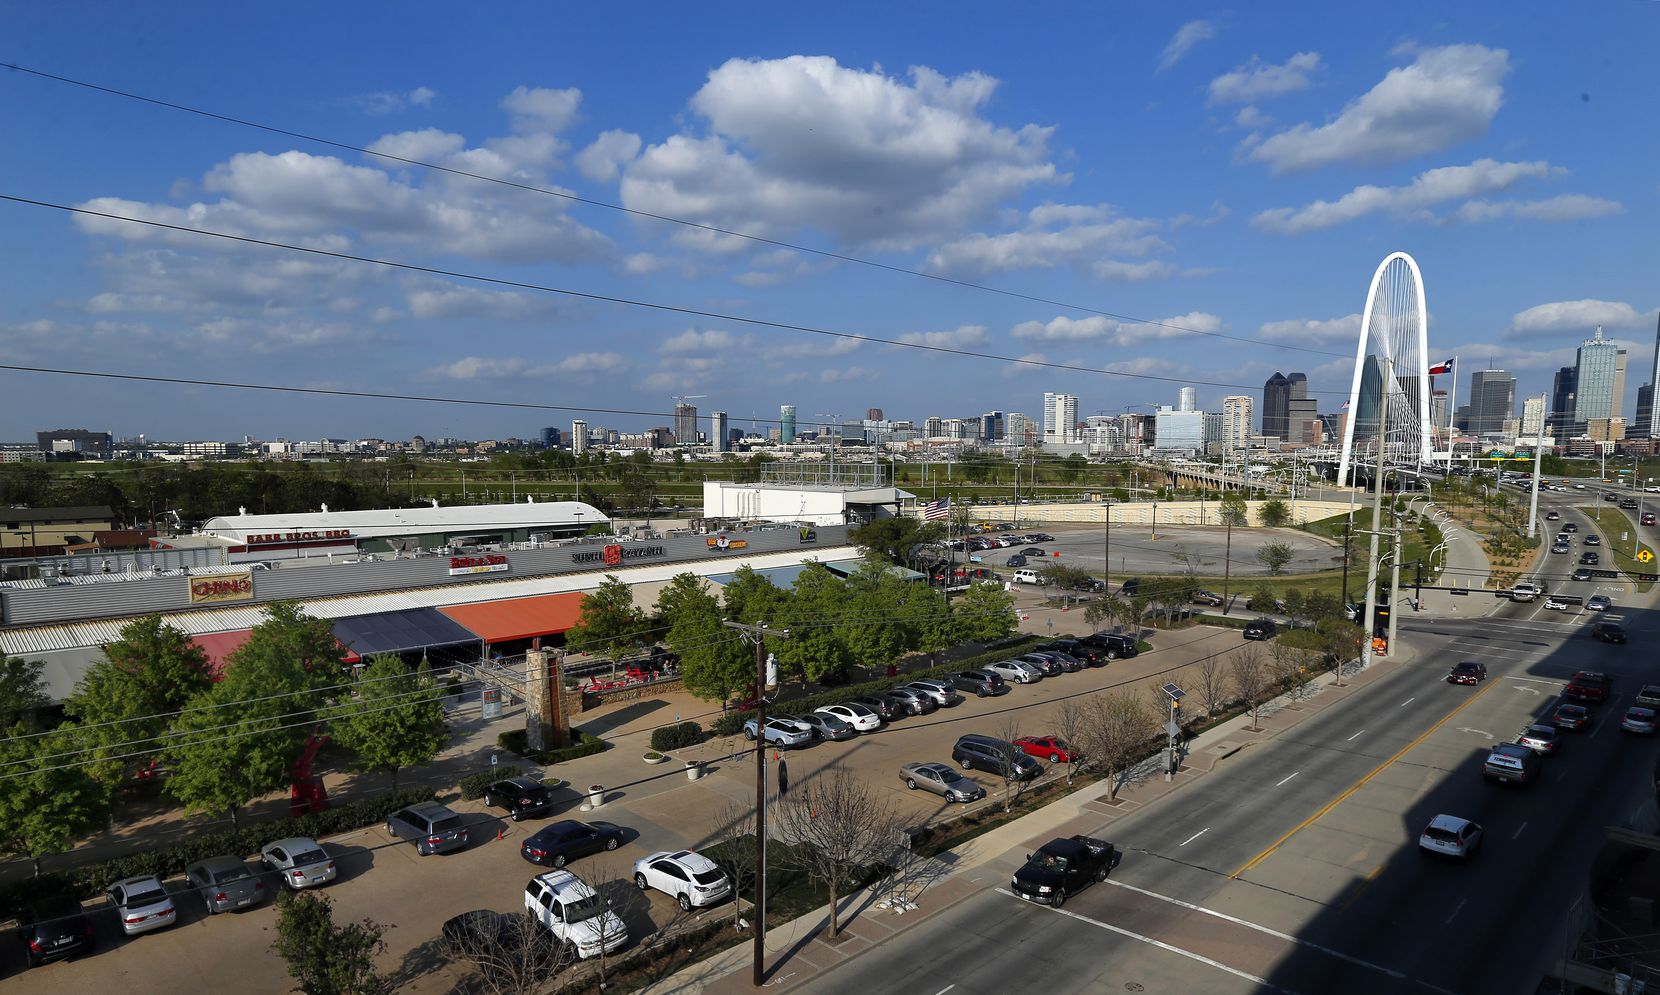 The new beer garden will be built where the parking lot is, in front of Trinity Groves.